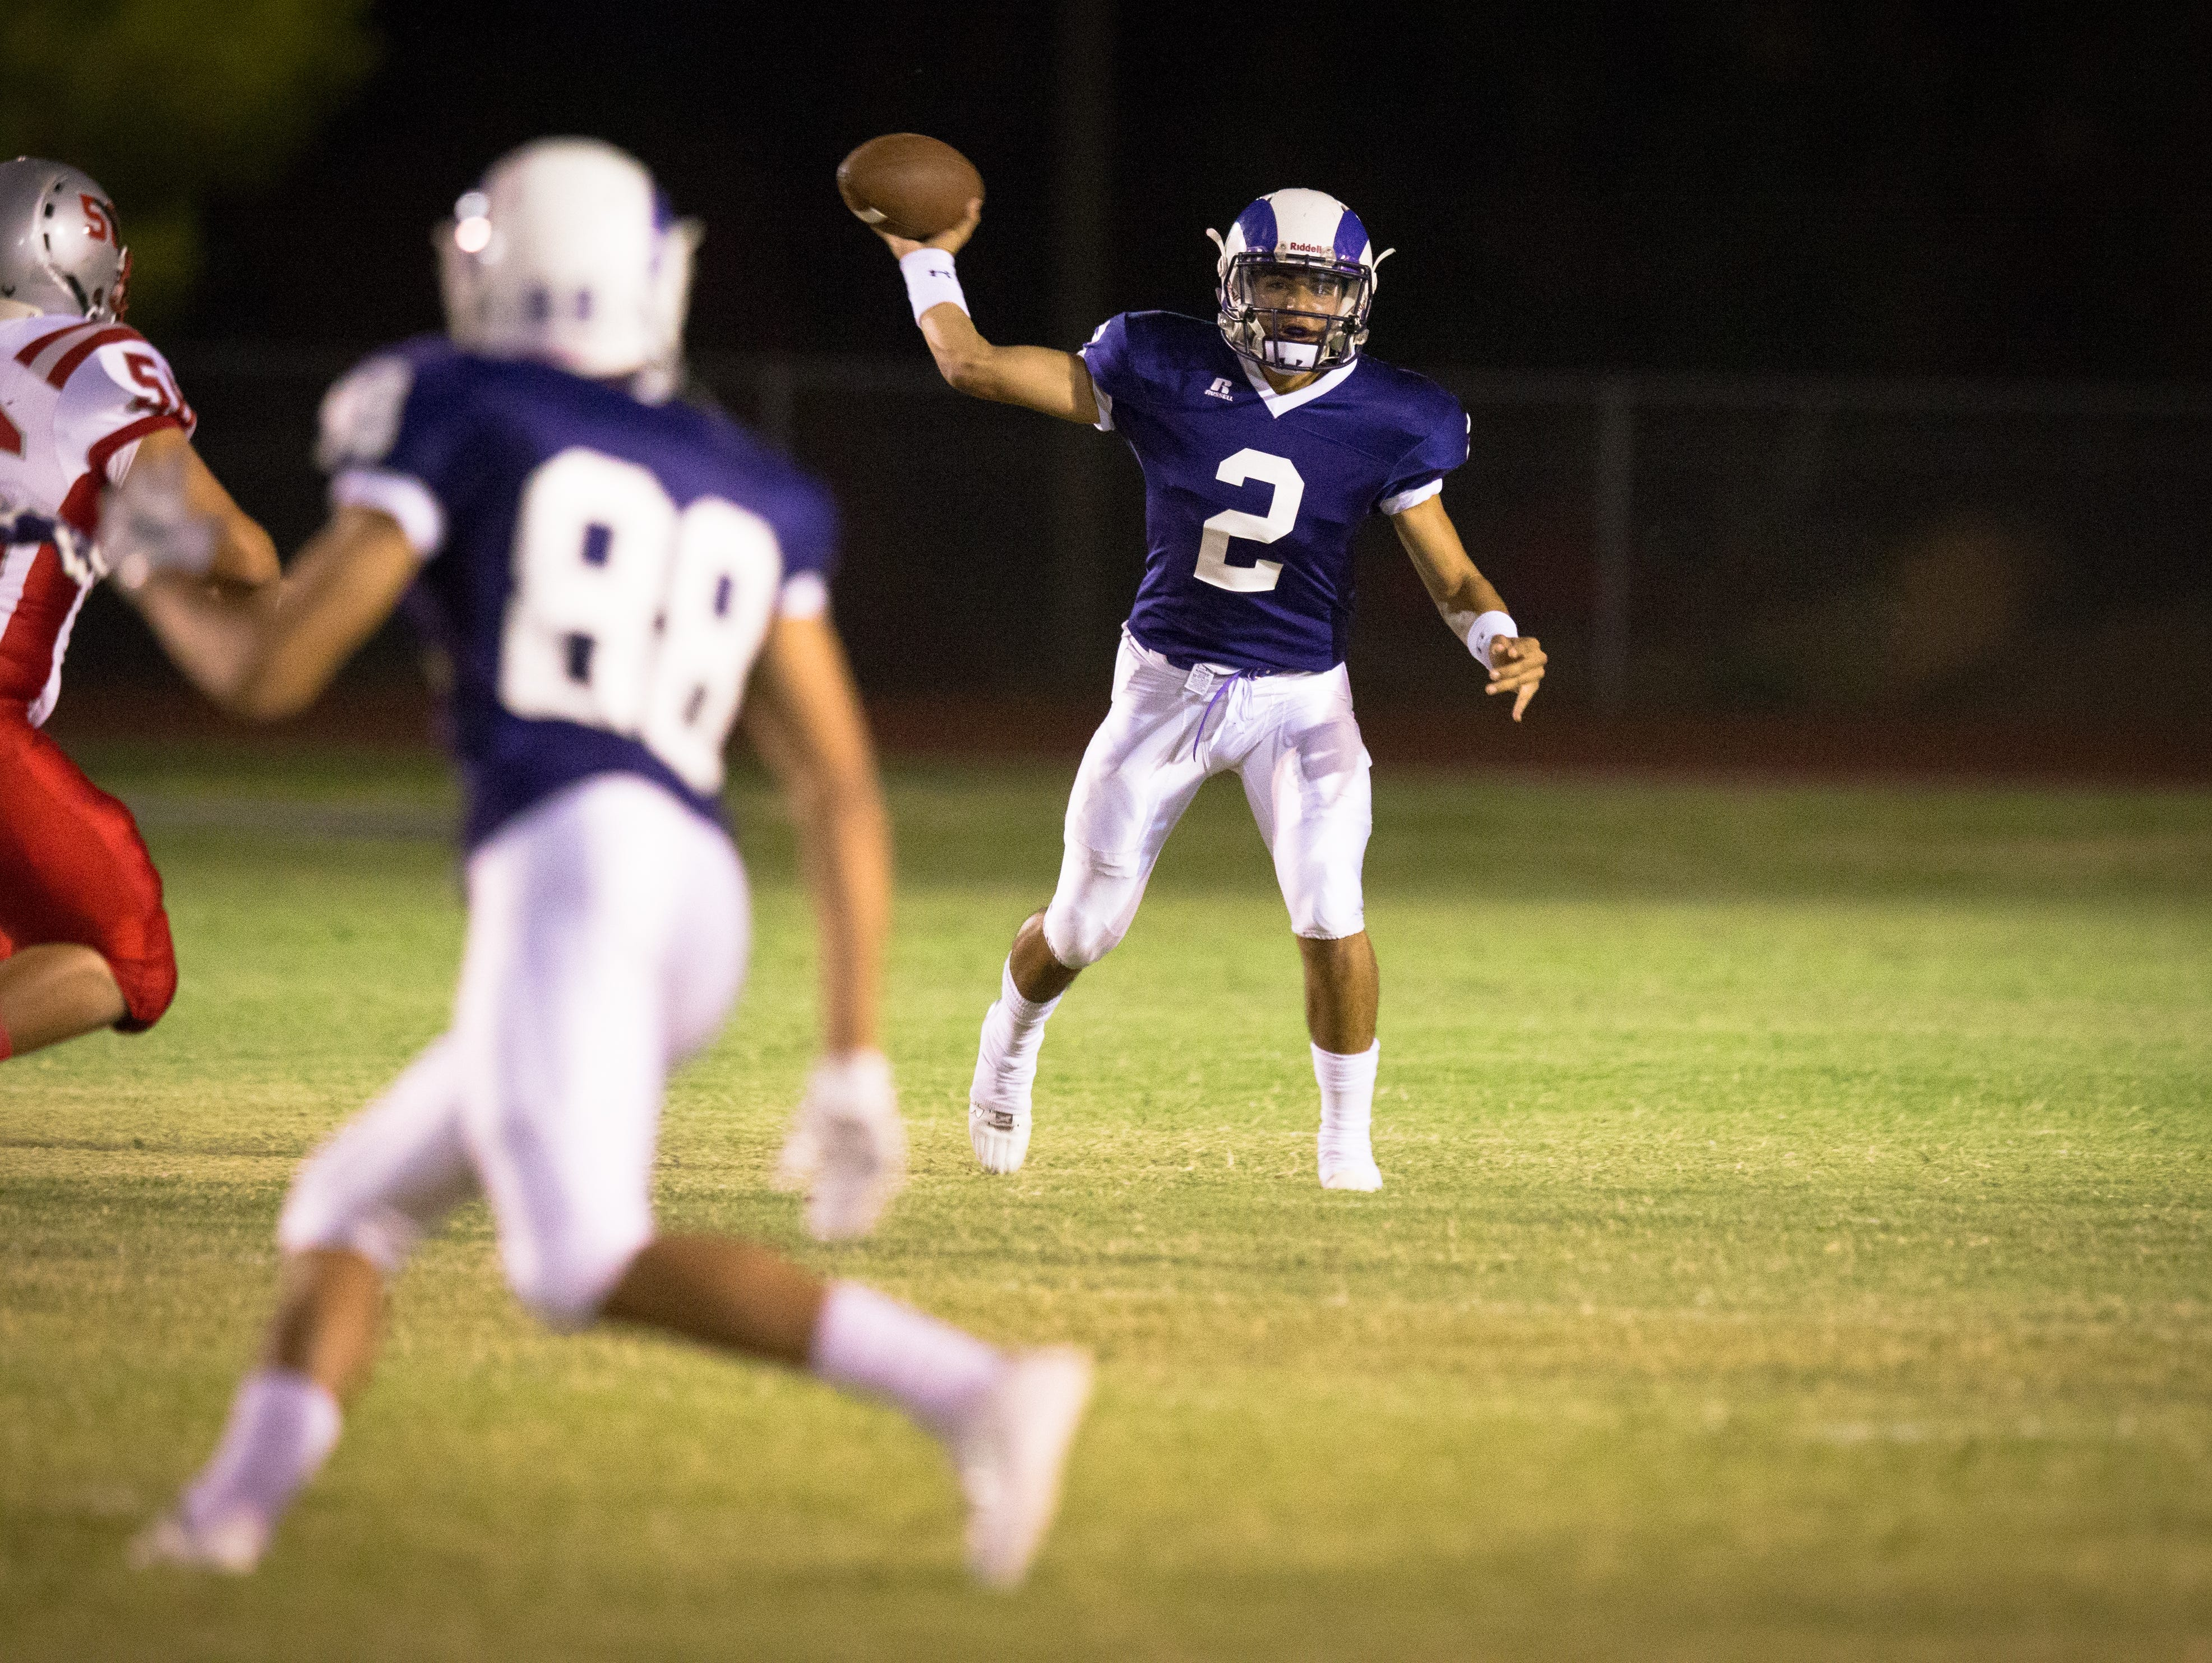 Amendarez set two single-game state records for passing yardage (756) and touchdown passes (10) in a 96-74 Division III loss to Avondale Agua Fria.